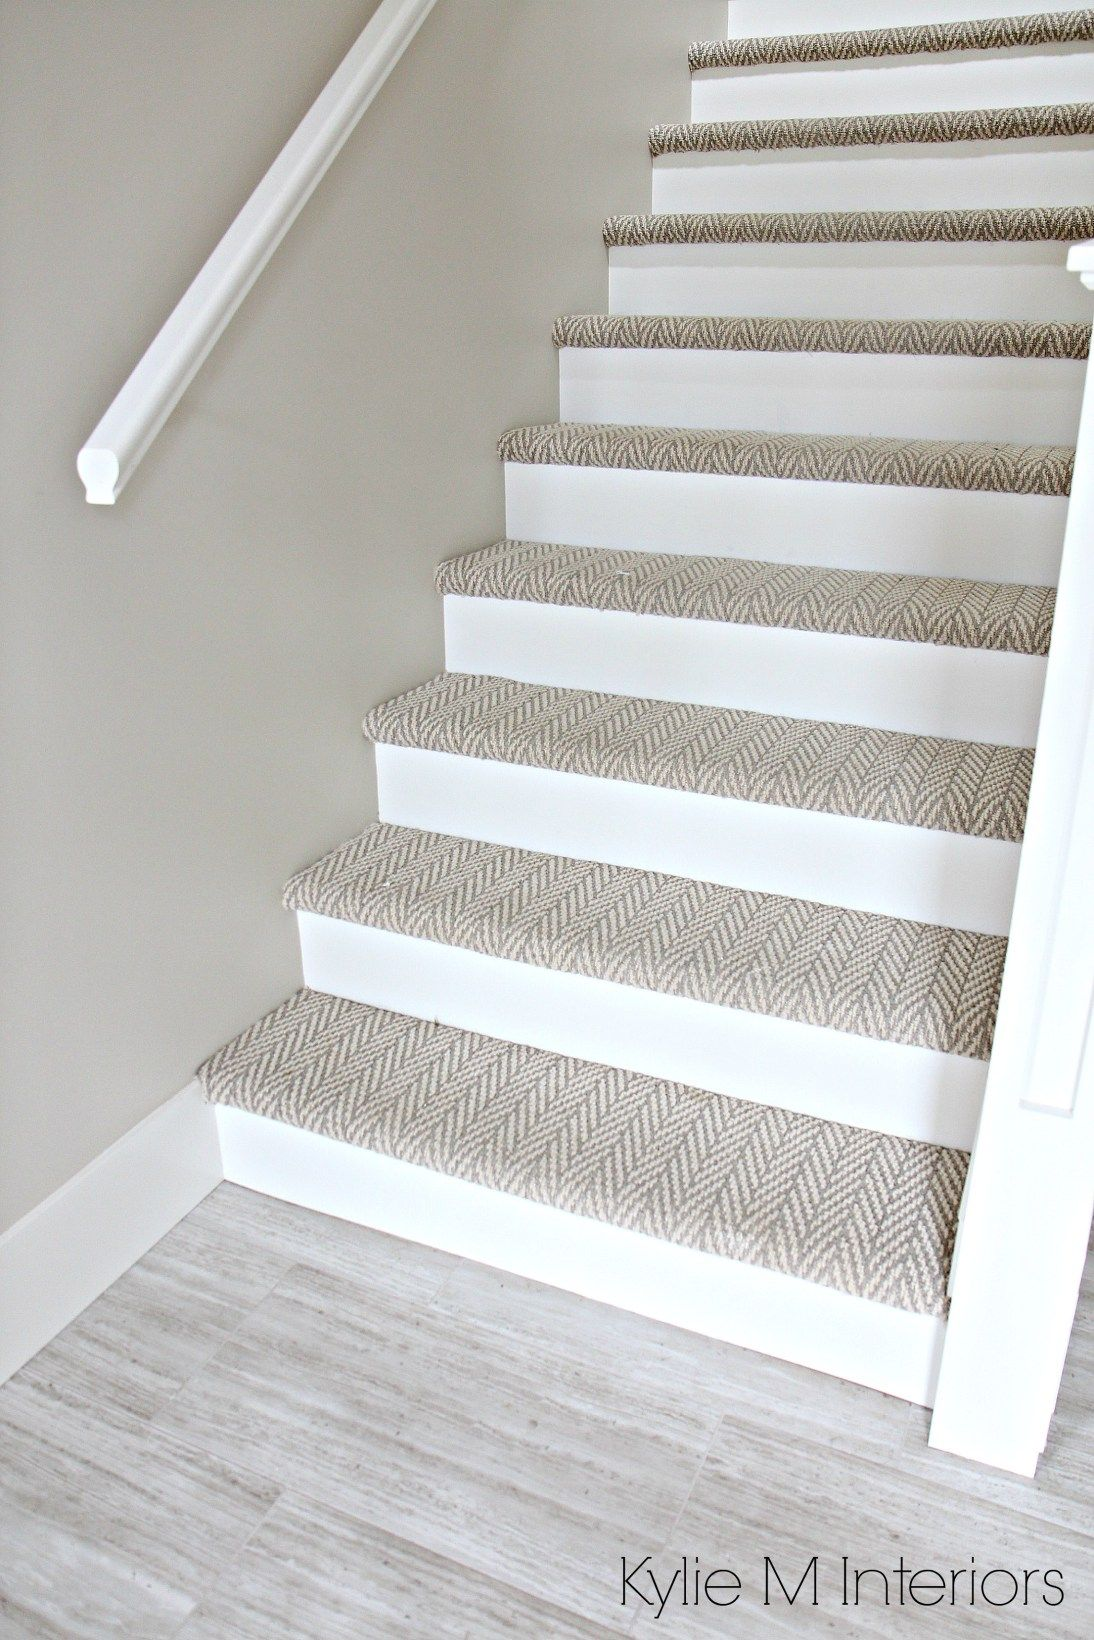 The 3 Best NOT BORING Paint Colours to Brighten Up a Dark Hallway     Stairs with carpet herringbone treads and painted white risers  looks like  a runner  Benjamin Moore Edgecomb Gray on stairwell wall